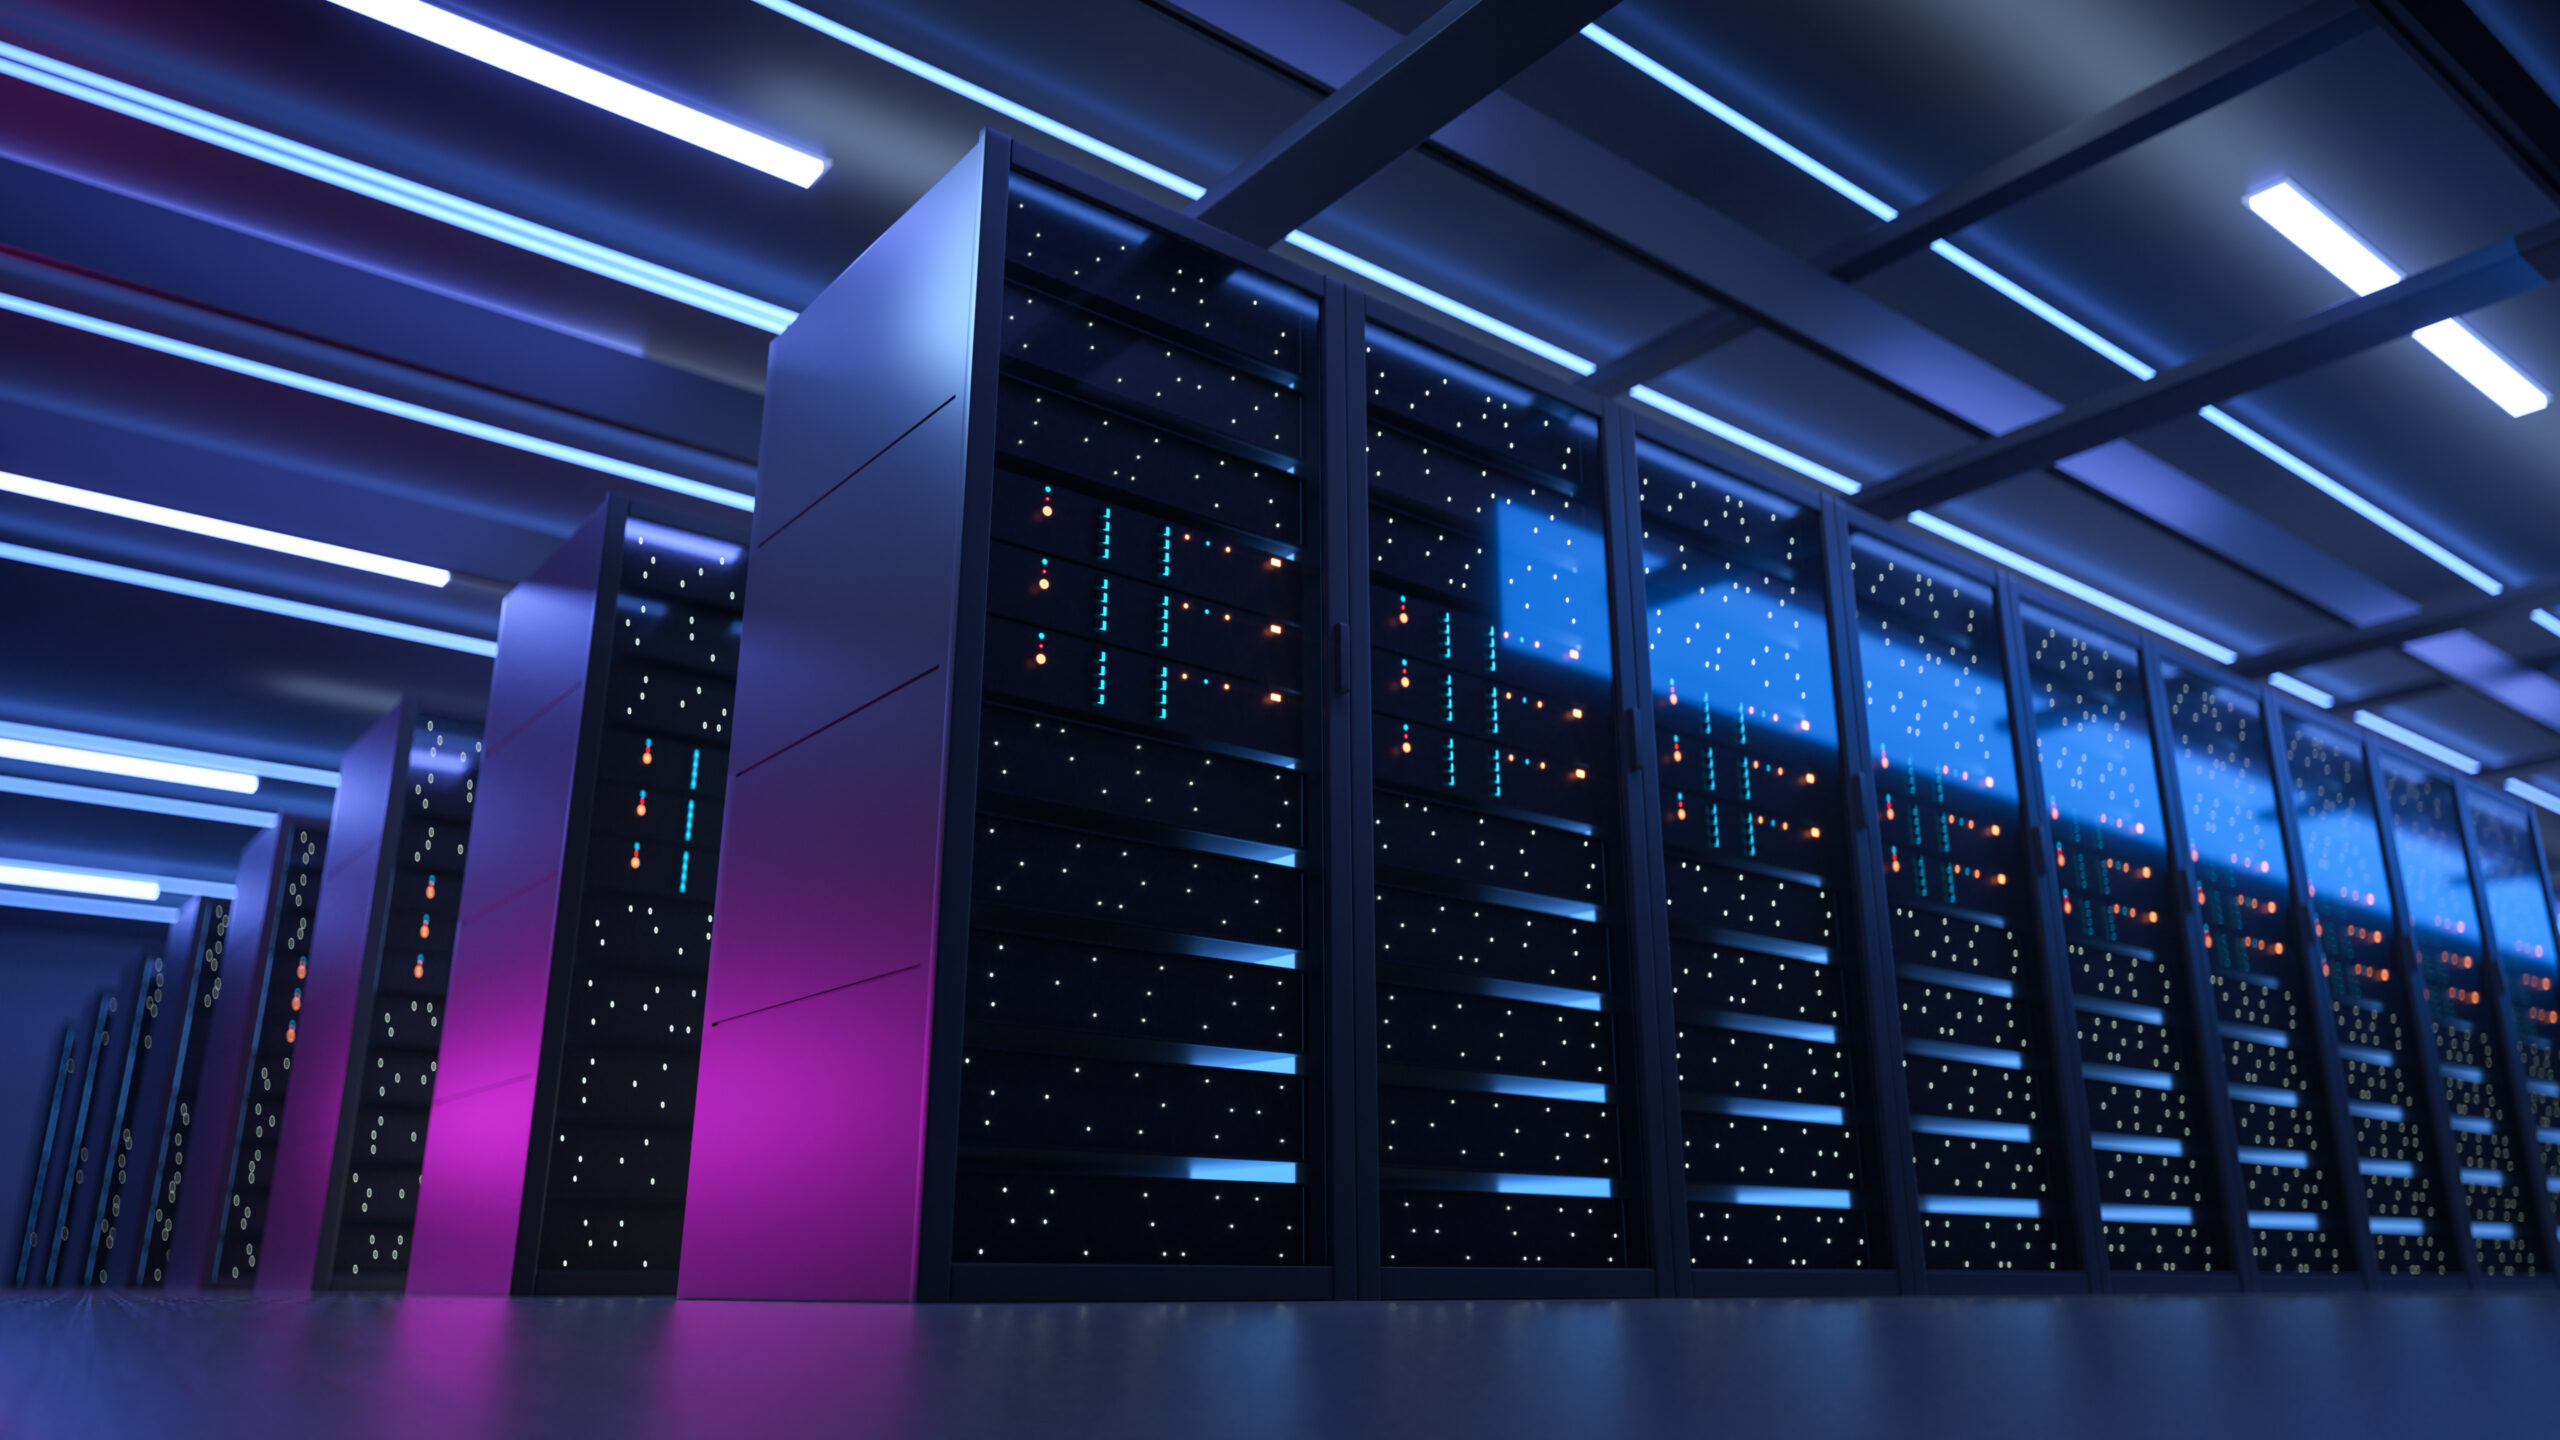 Wide angle shot of rows of server cabinets lined up next to each other in working data center. Led lights on server cabinets. Room illuminated by purple glow from lighting.